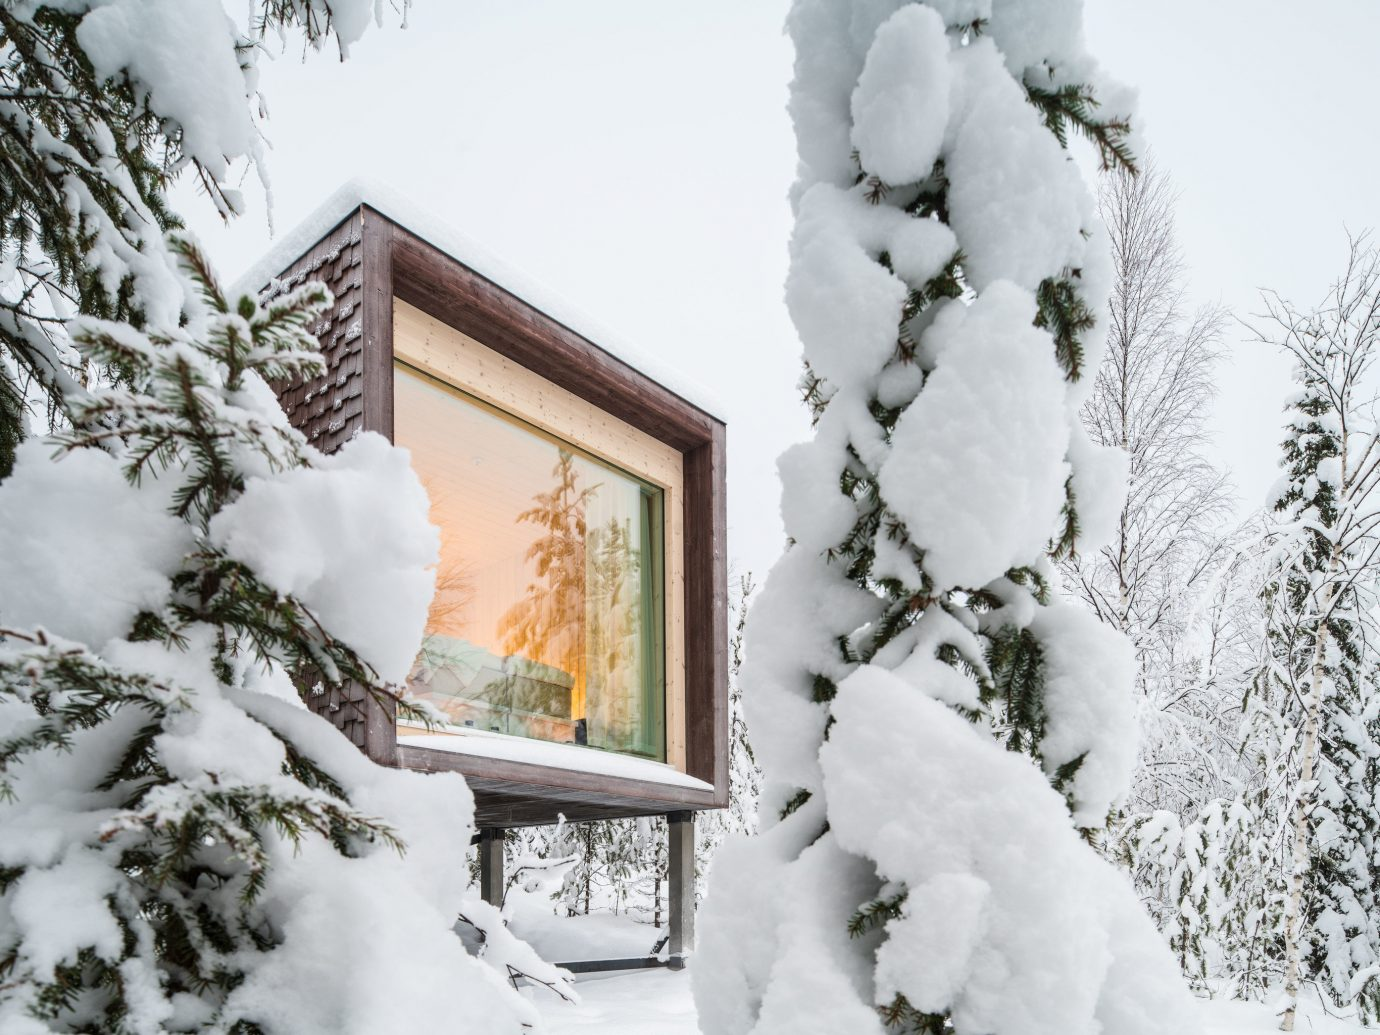 Finland Trip Ideas tree snow outdoor Winter freezing frost Nature branch home fir pine family blizzard ice fresh